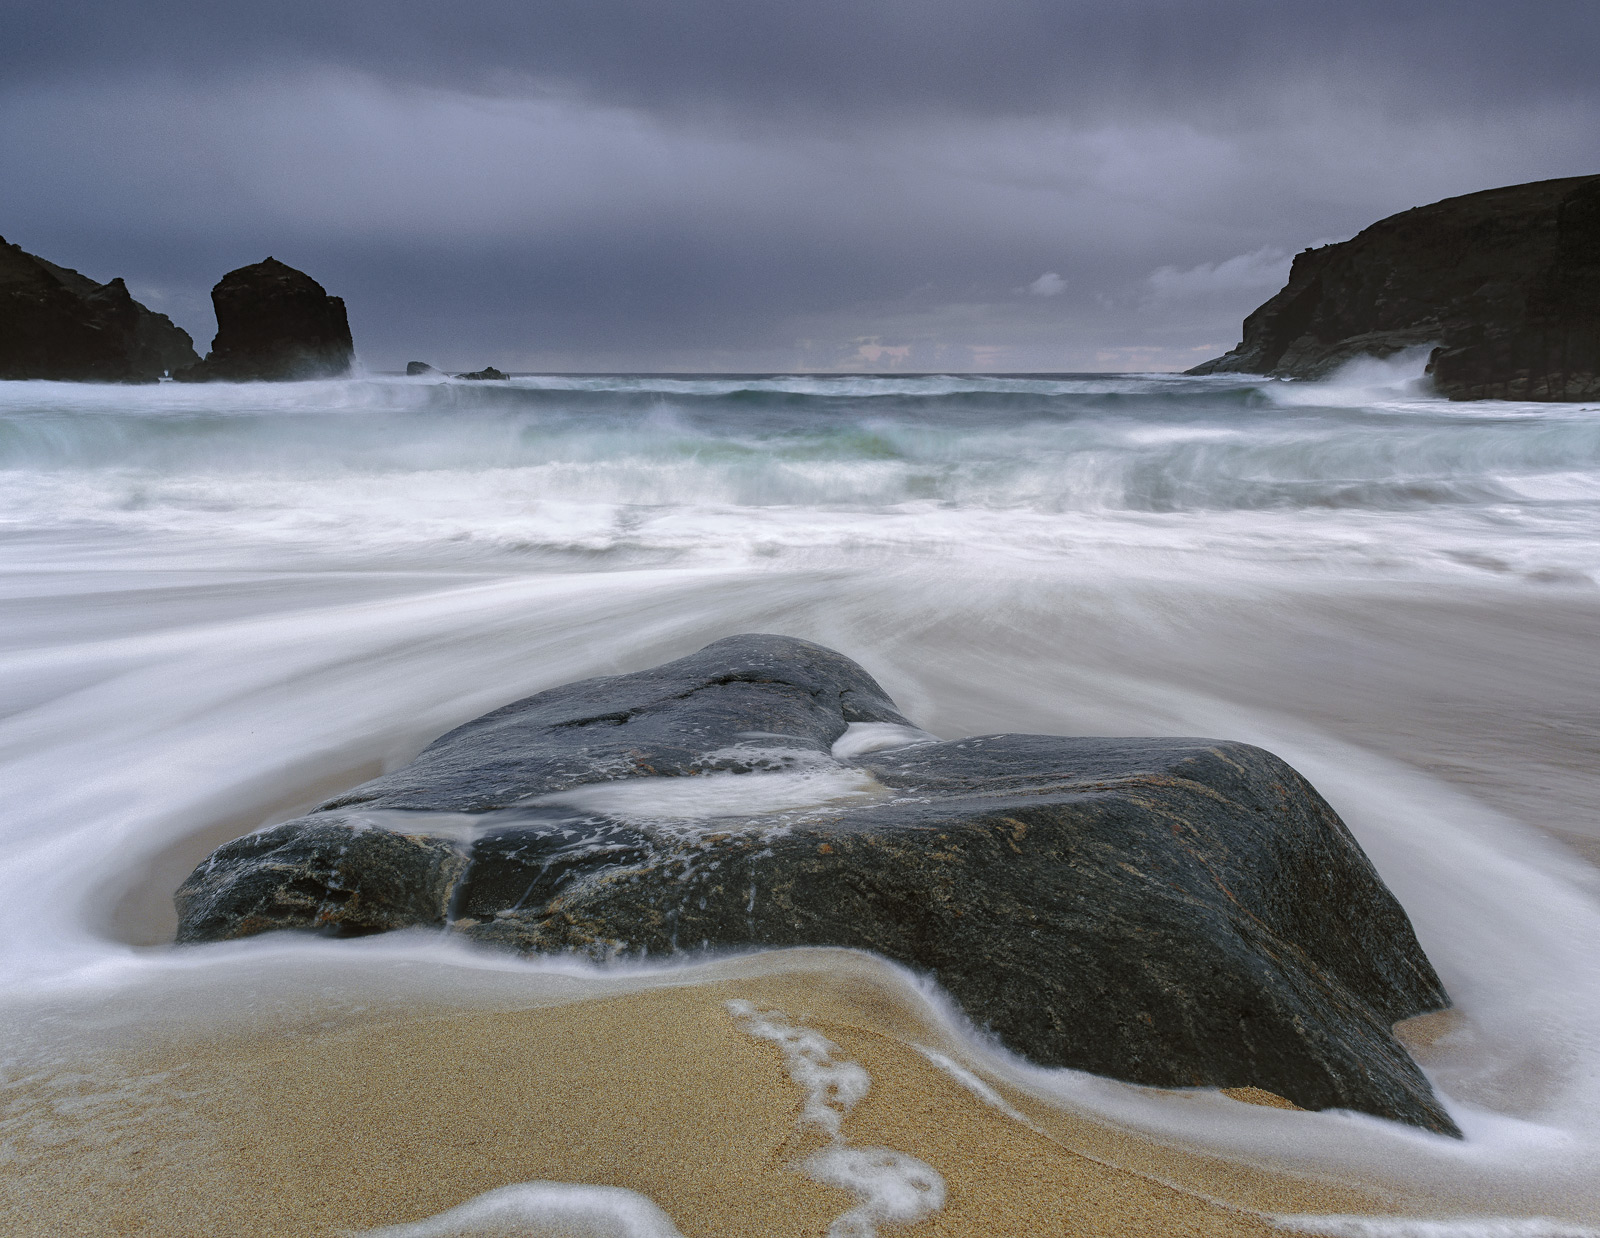 As the tide reached it's maximum height on Dail Beag beach it started to envelop the larger embedded gneiss half submerged in...